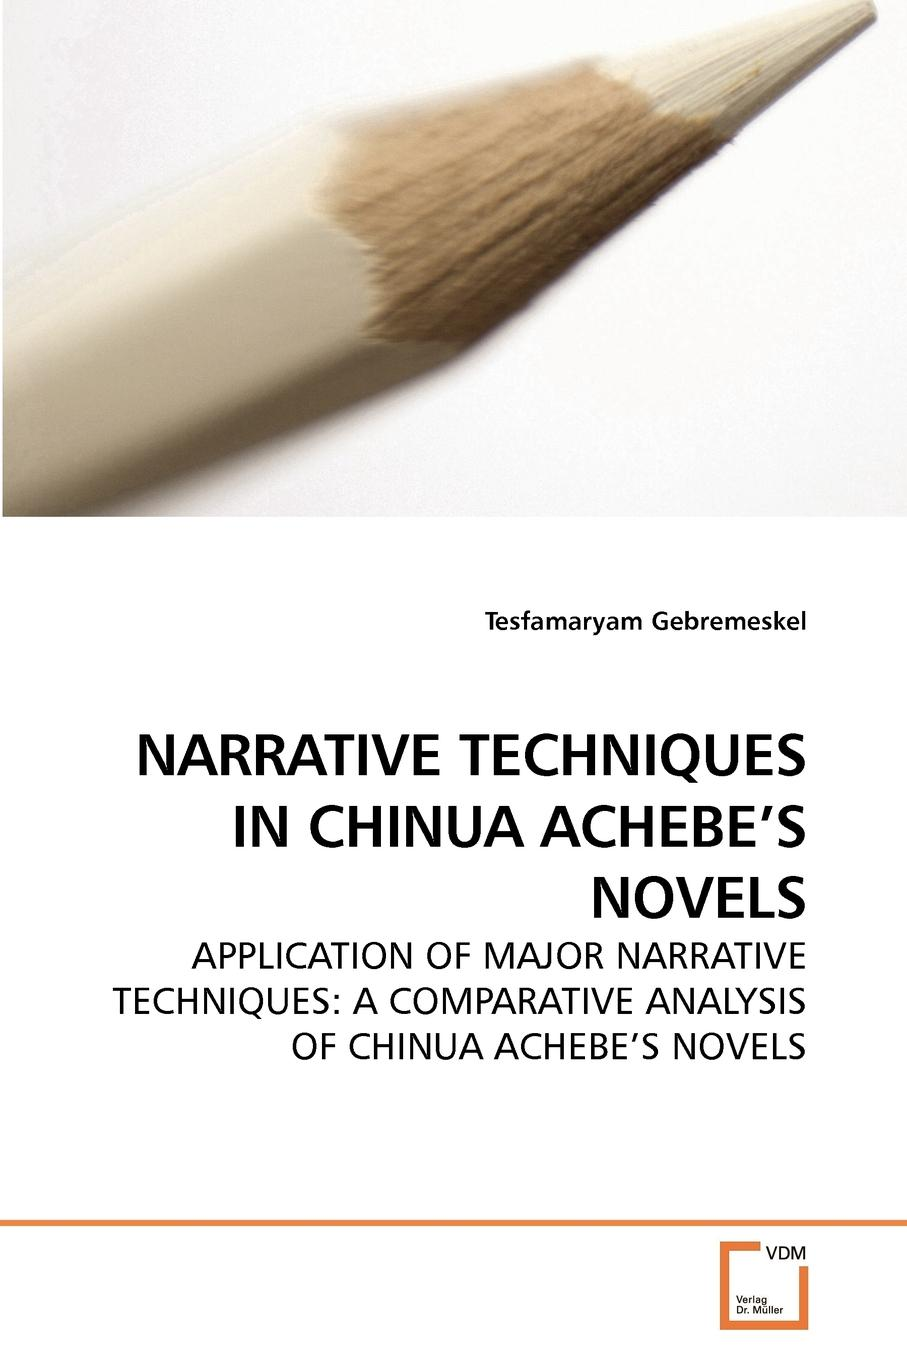 Tesfamaryam Gebremeskel NARRATIVE TECHNIQUES IN CHINUA ACHEBE.S NOVELS forman samuel s narrative of a journey down the ohio and mississippi in 1789 90